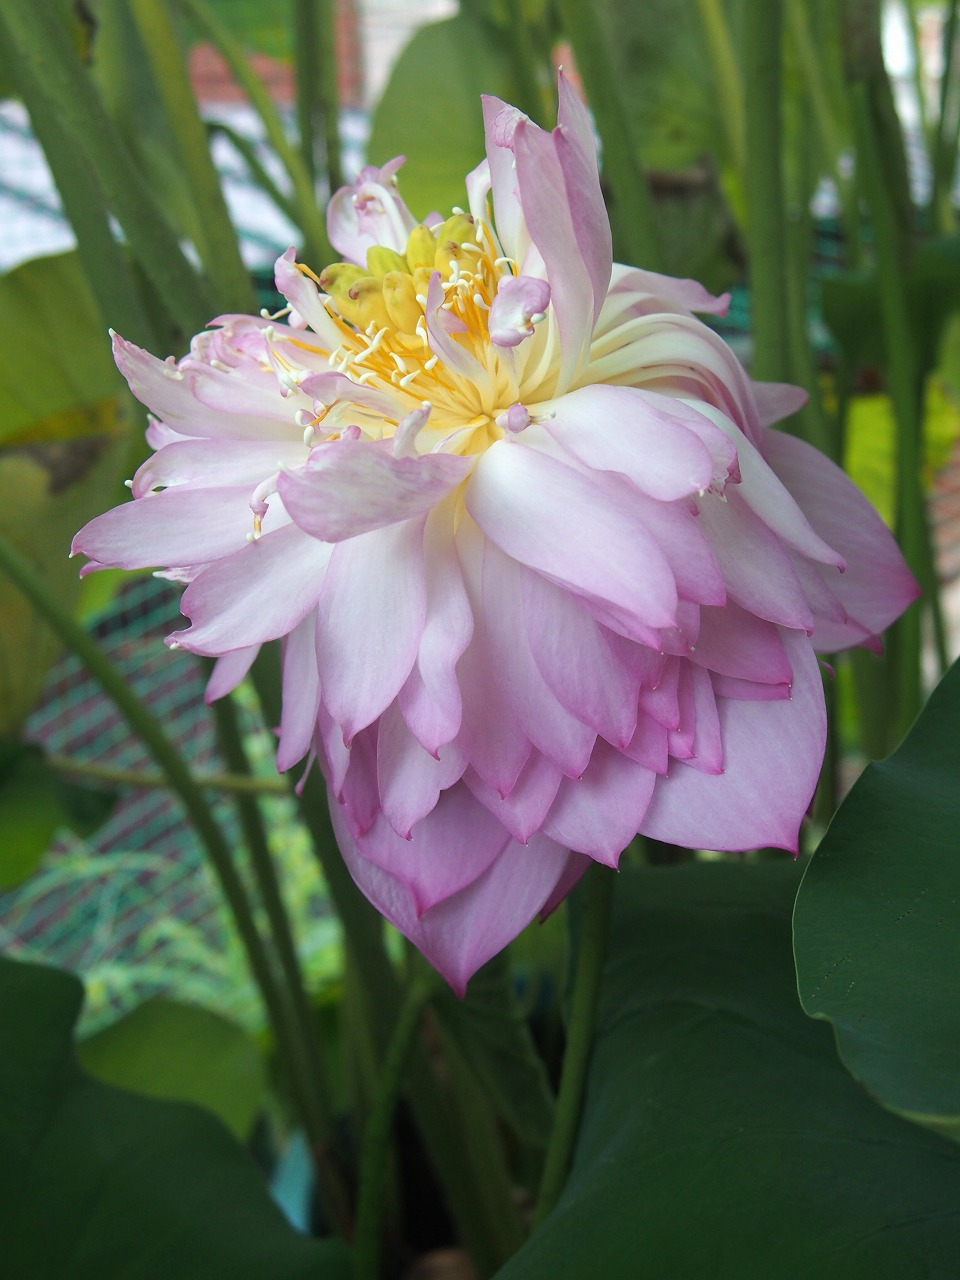 20160822-Lotus_Hishinko-O05.jpg